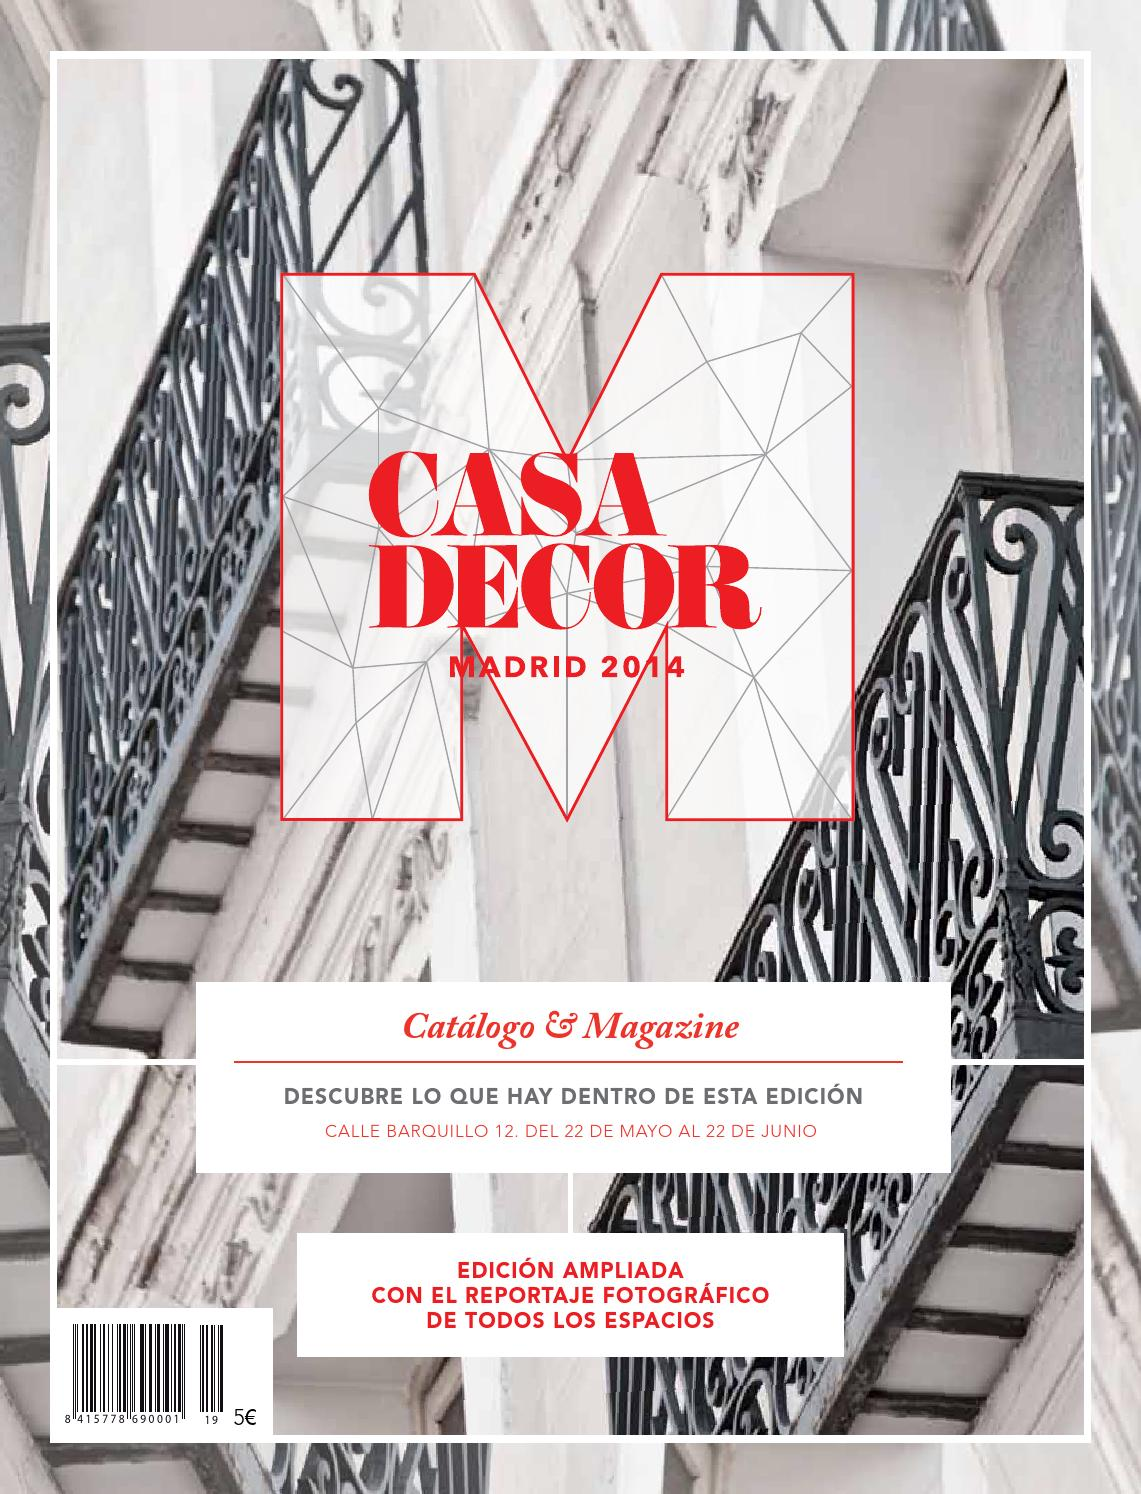 Muebles Martin Los Barrios Catalogo Catalogo Casa Decor Madrid 2014